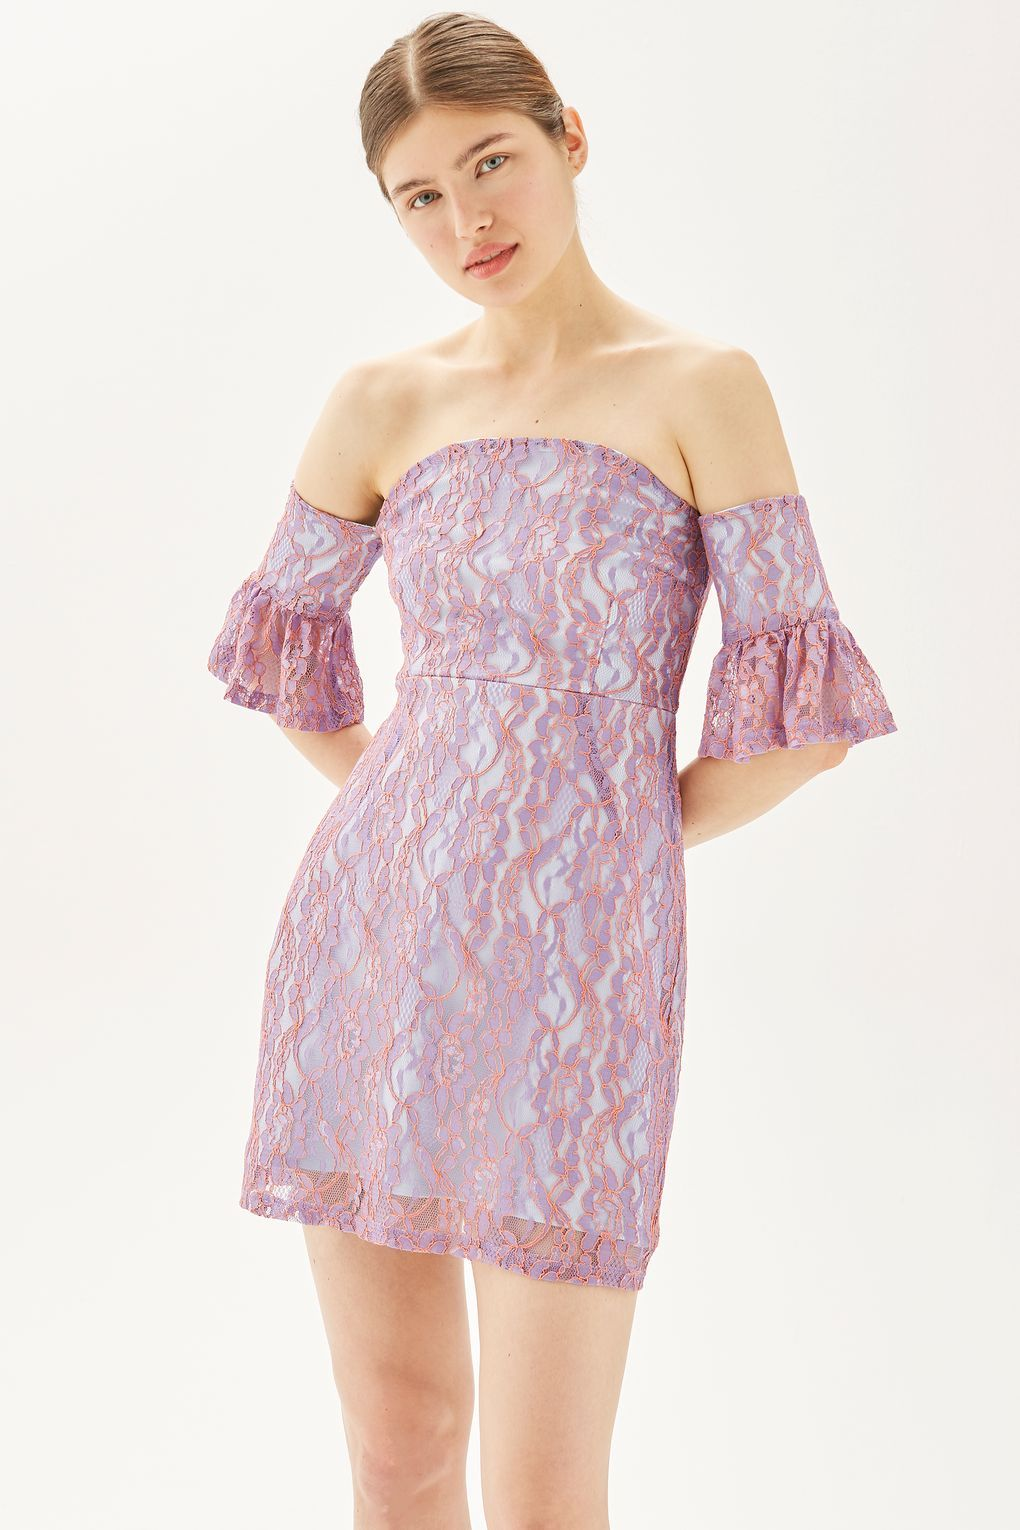 Pink dress topshop  Lace Flute Sleeve Bardot Dress  New In Fashion  New In  Bardot